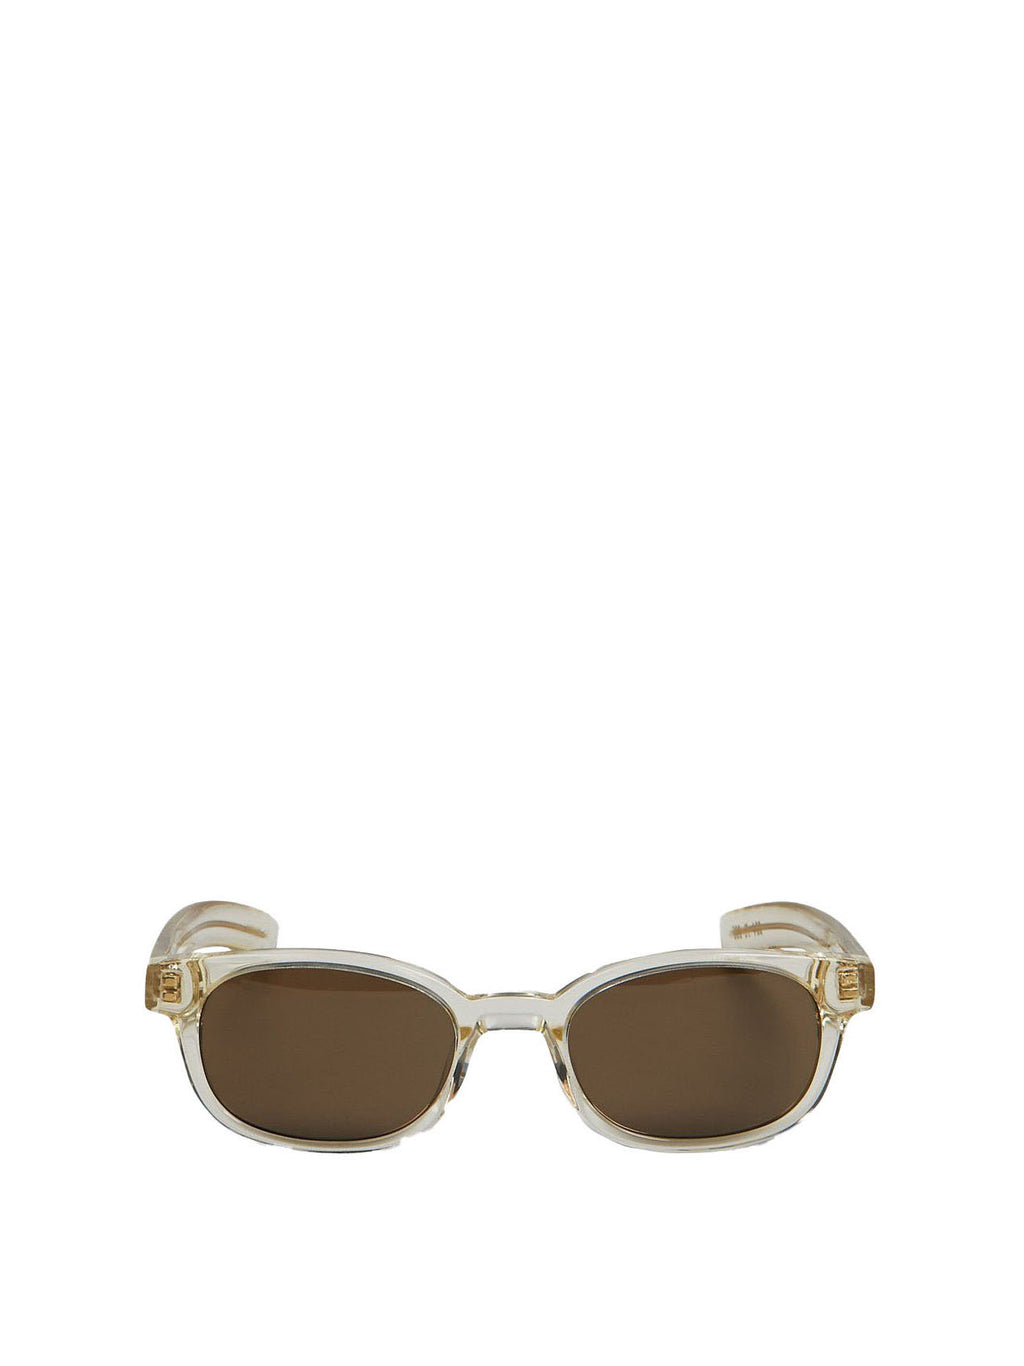 Yellow & Brown Le Bucheron Sunglasses